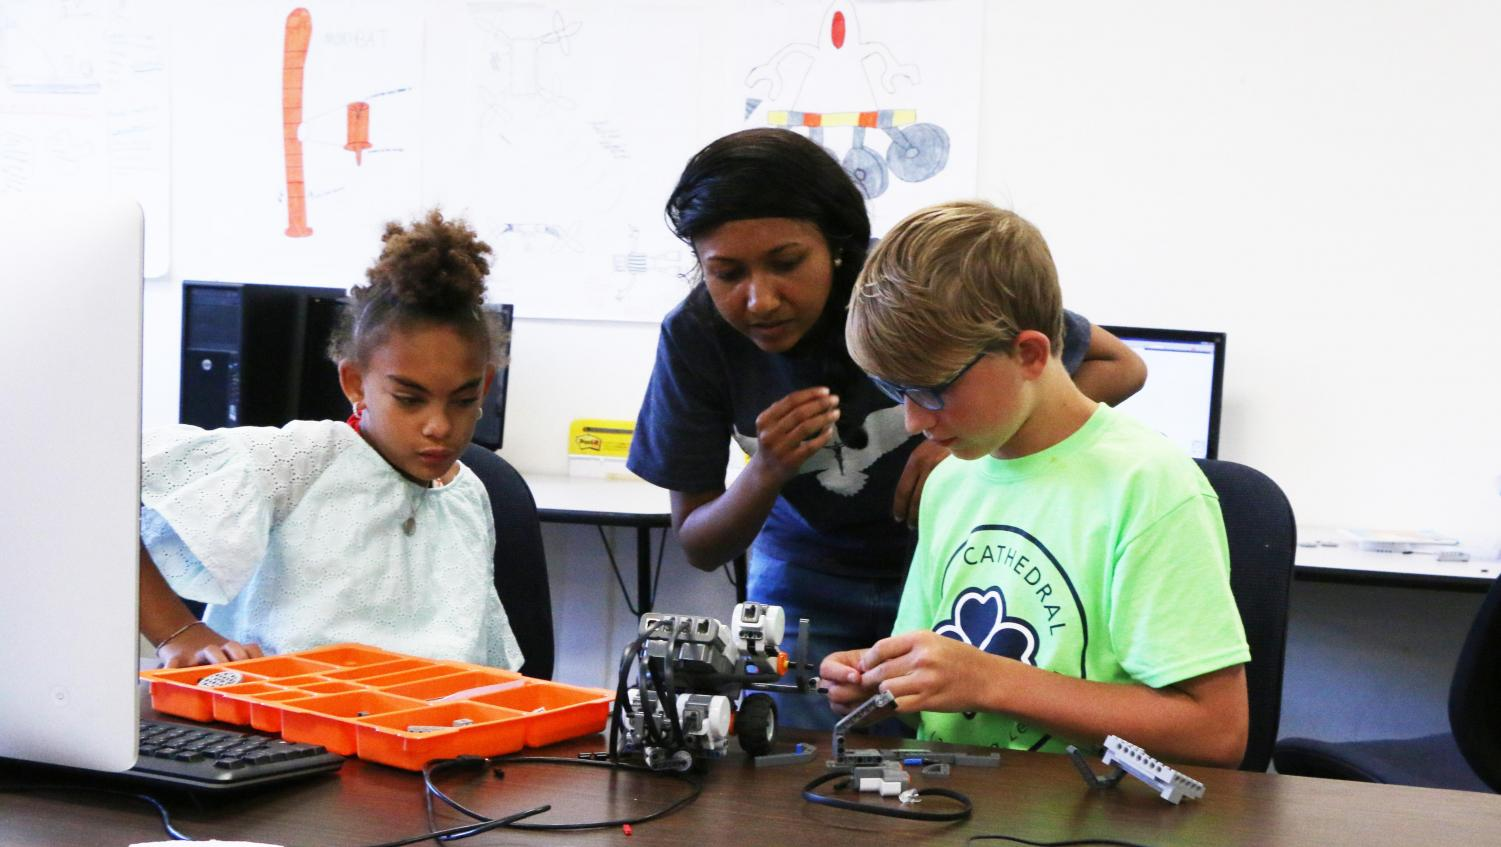 STEM teacher Ms. Ria Periera works with students on a project during last summer's Camp Cathedral.